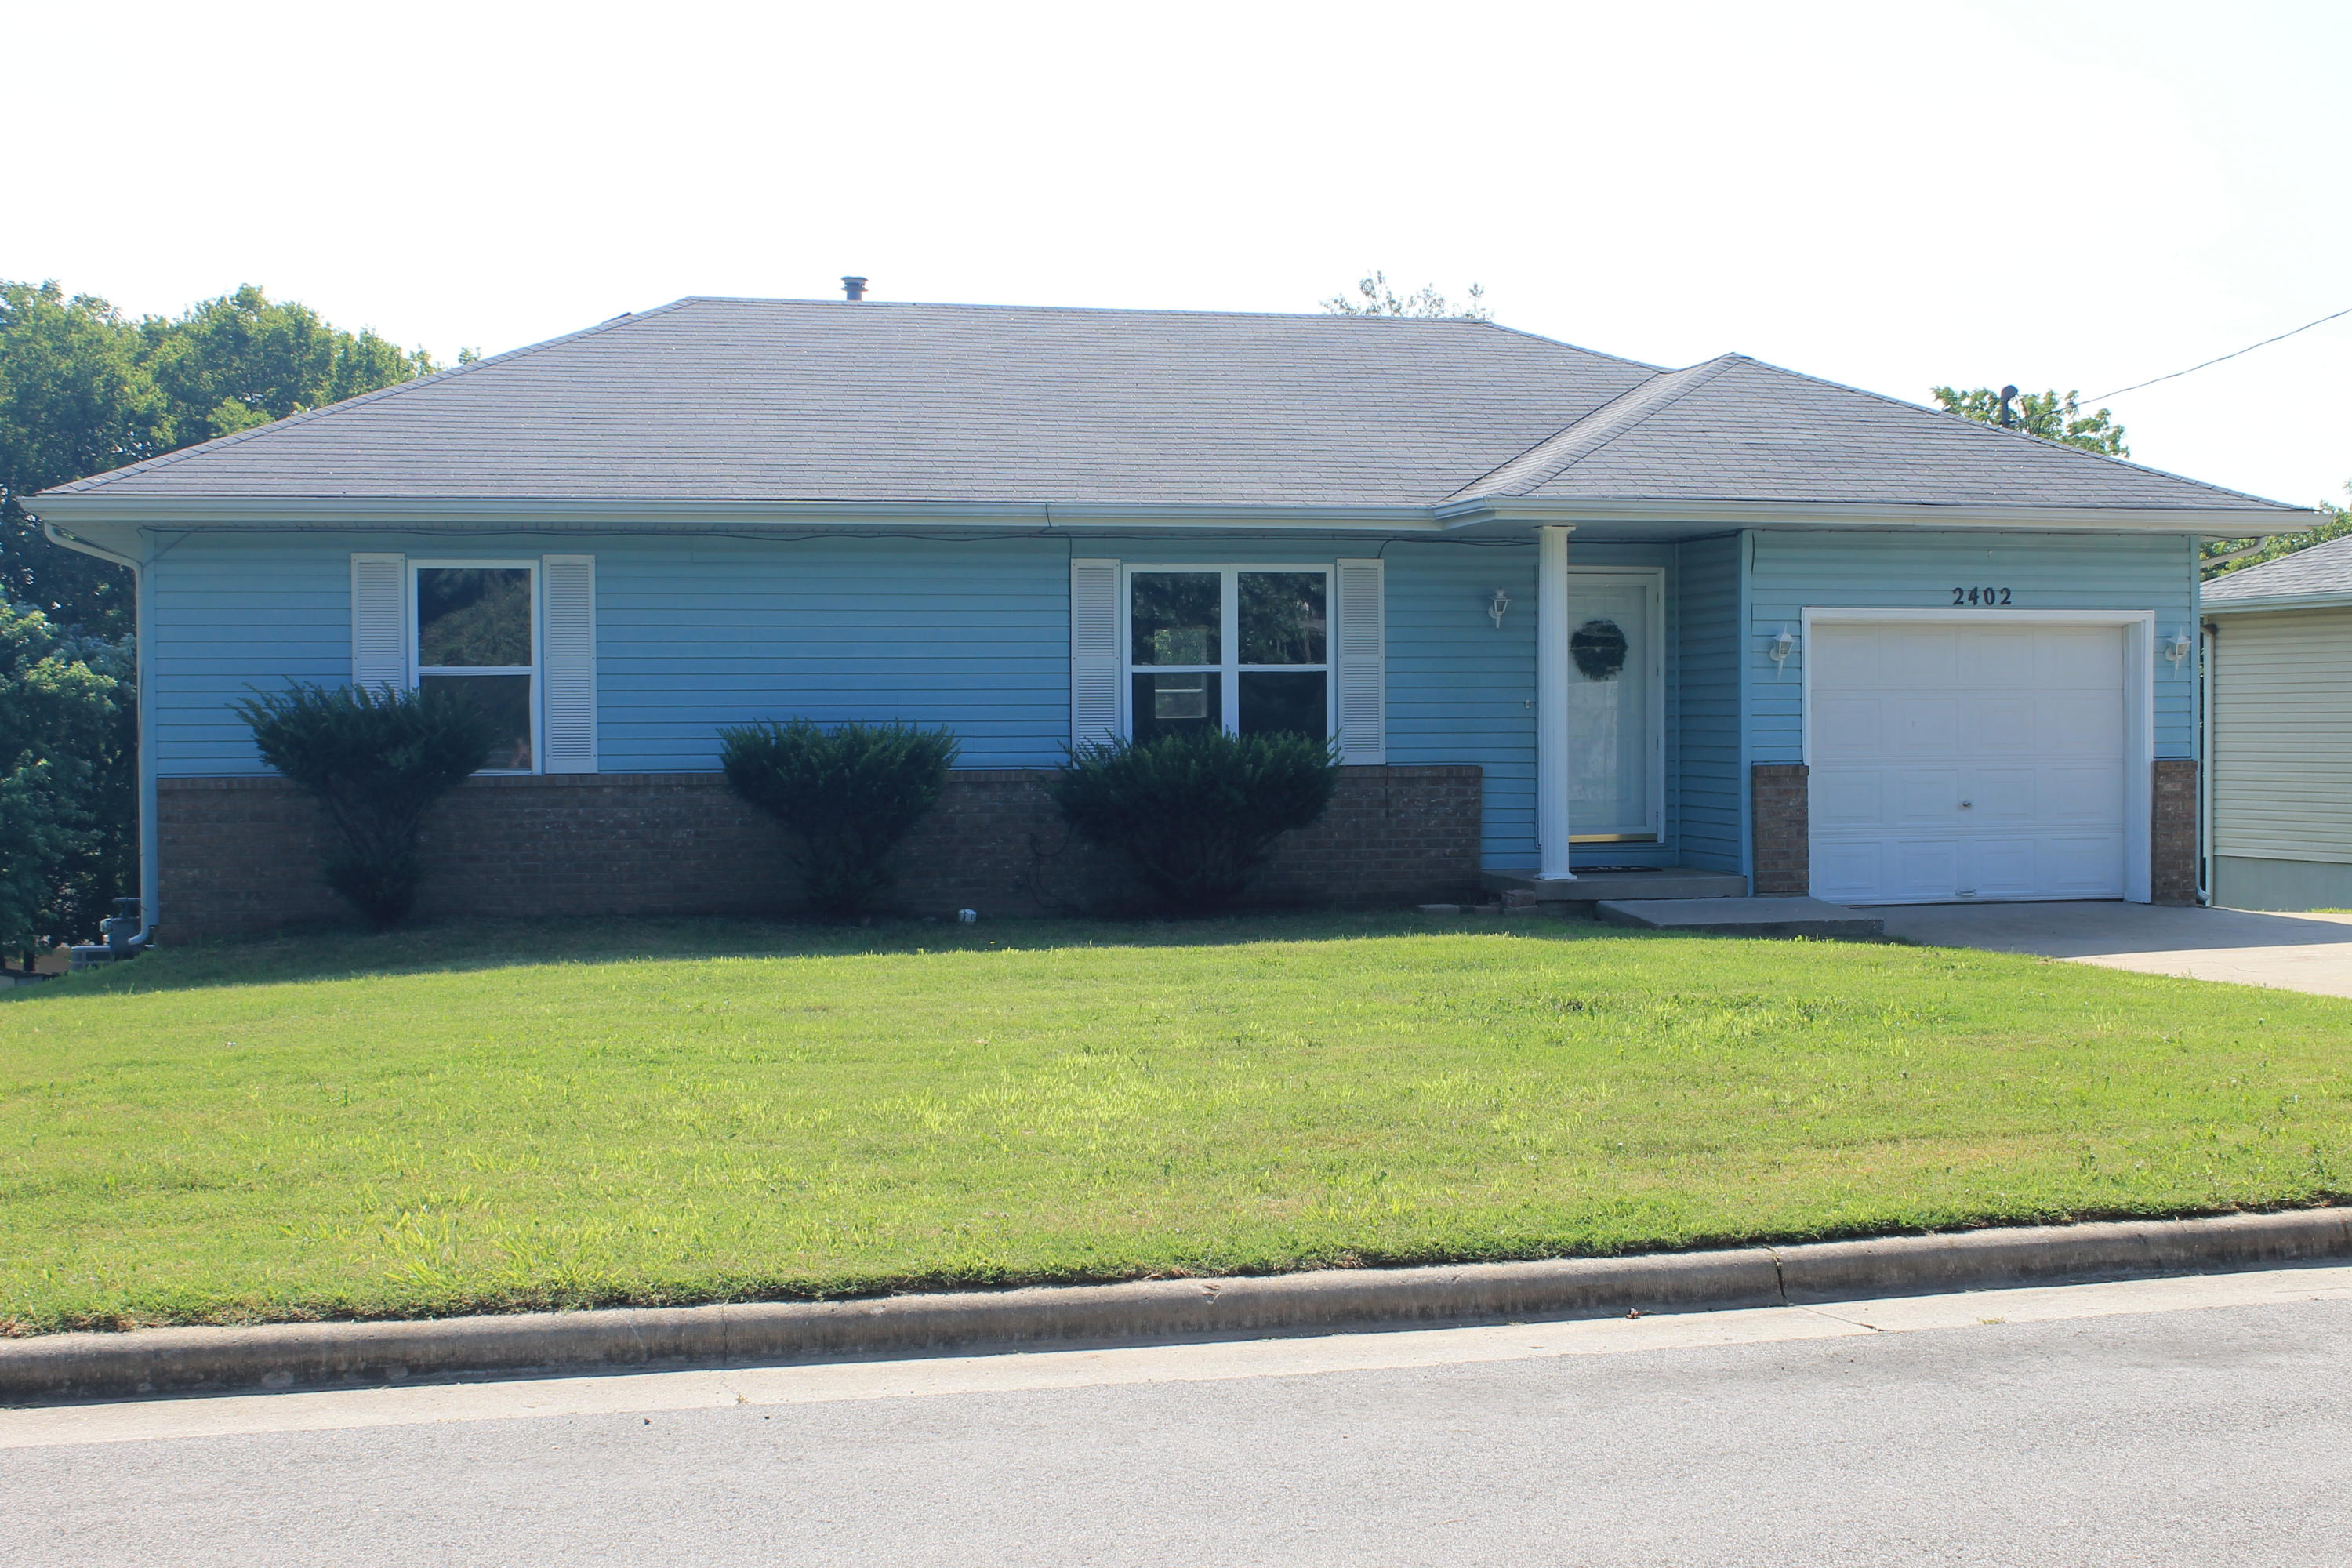 2402 South 14th Street Ozark, MO 65721